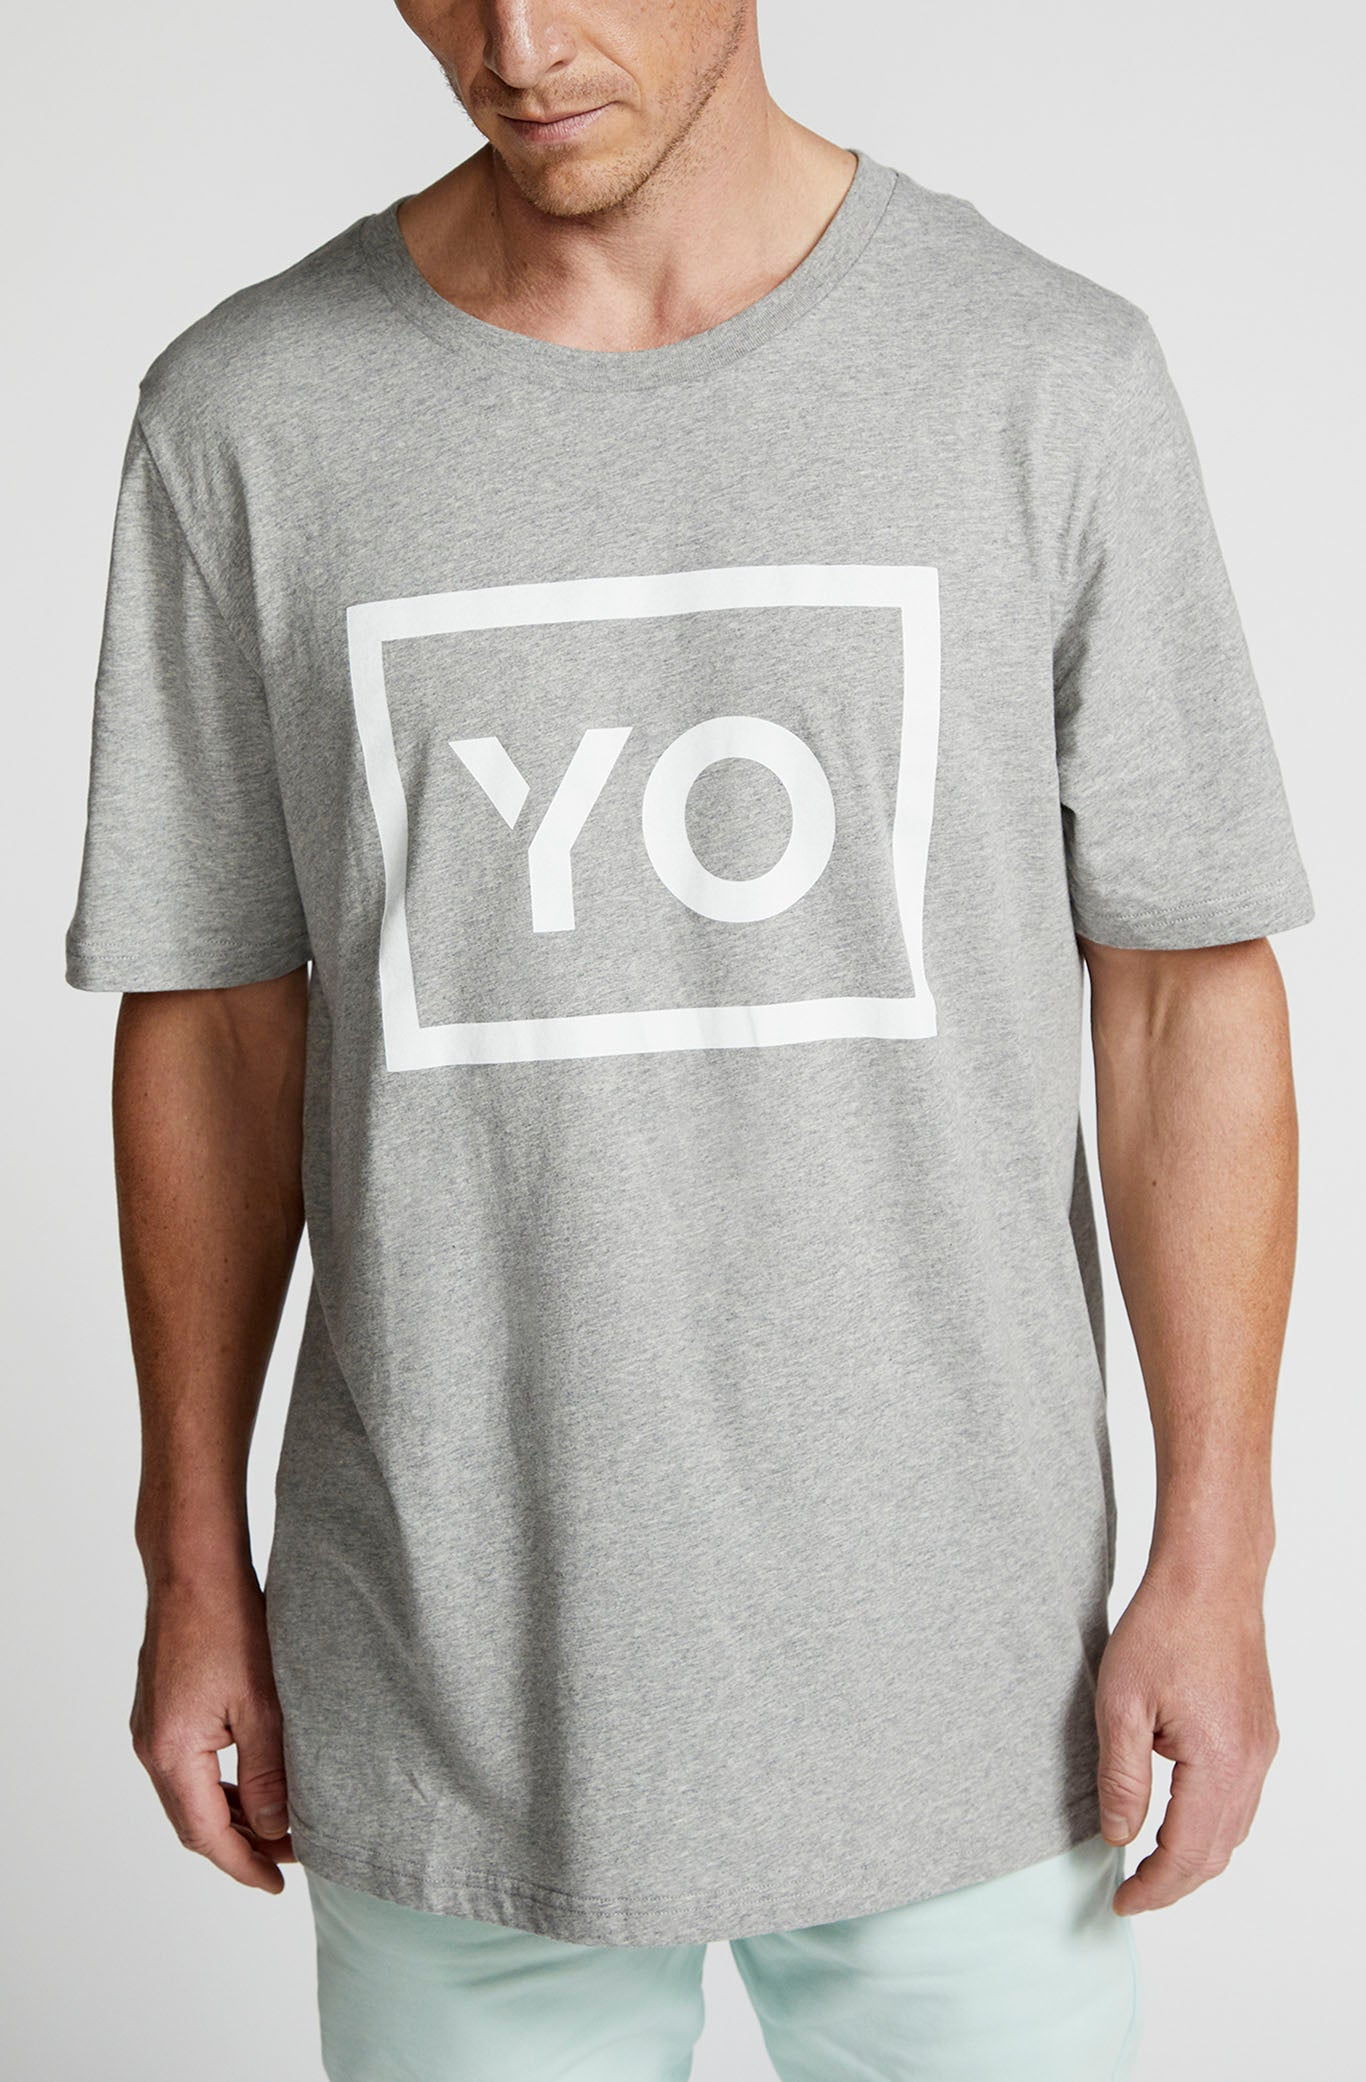 JACOB TEE 4 - YO COLLECTION 2.0 - GREY